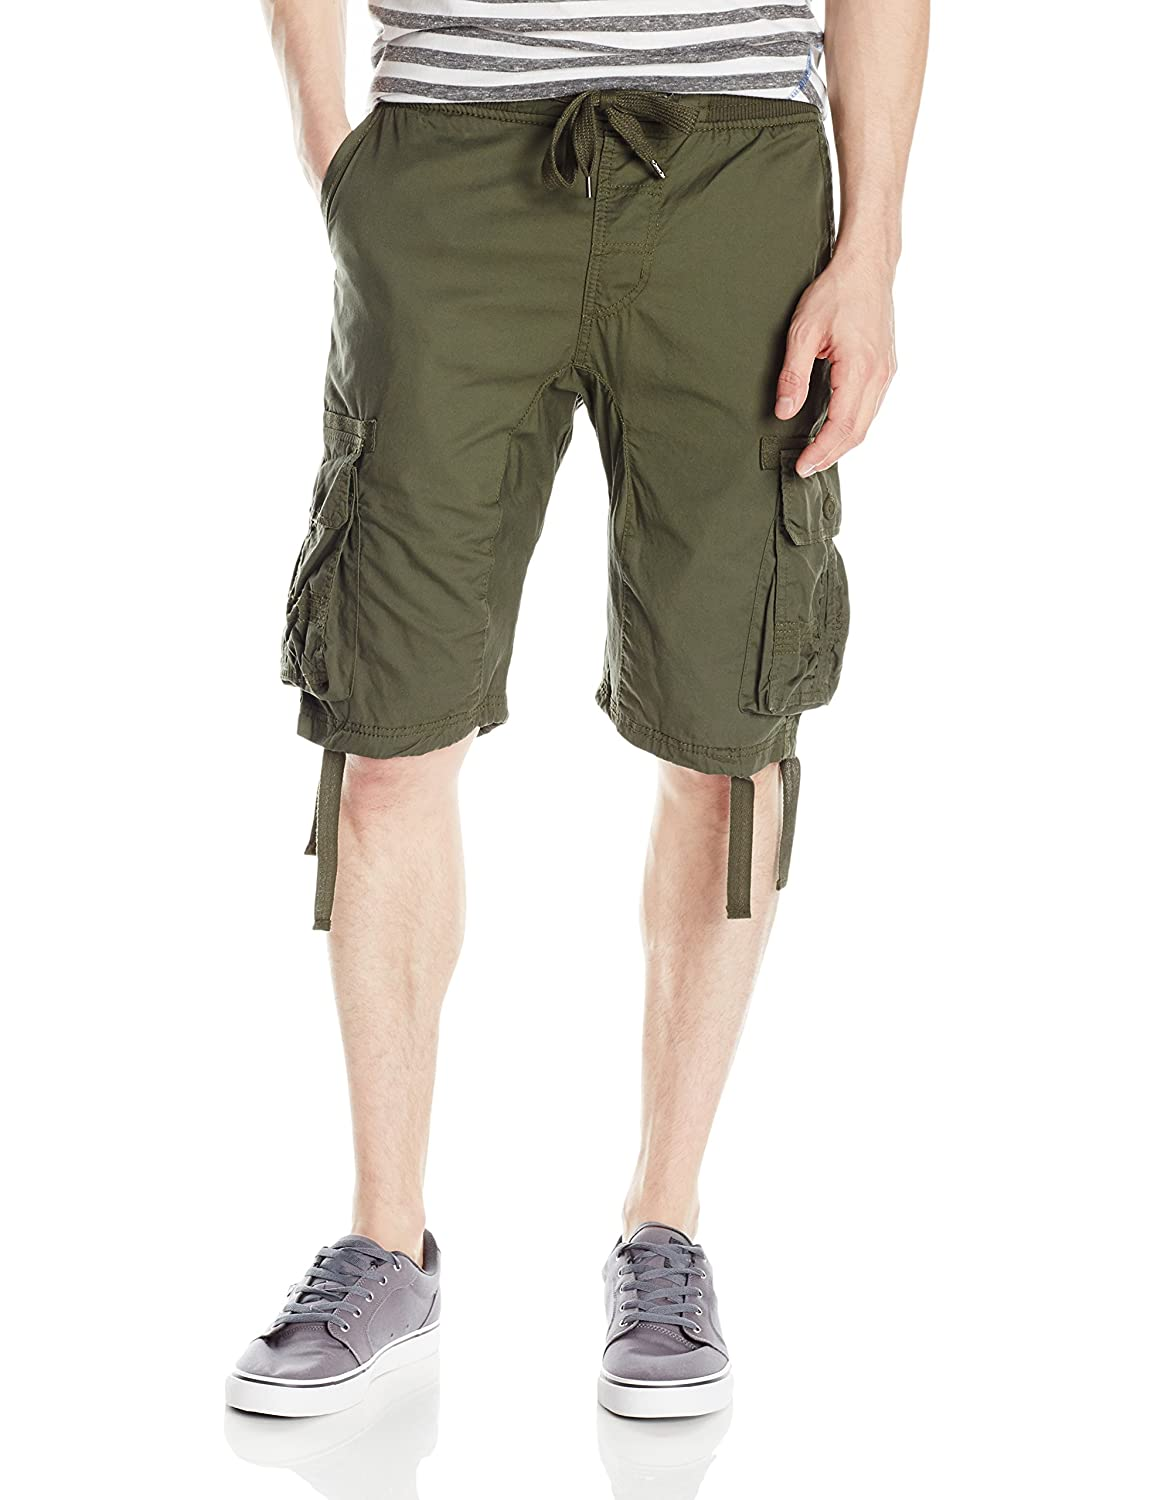 Southpole Mens Jogger Shorts with Cargo Pockets in Solid and Camo Colors 9001-3366